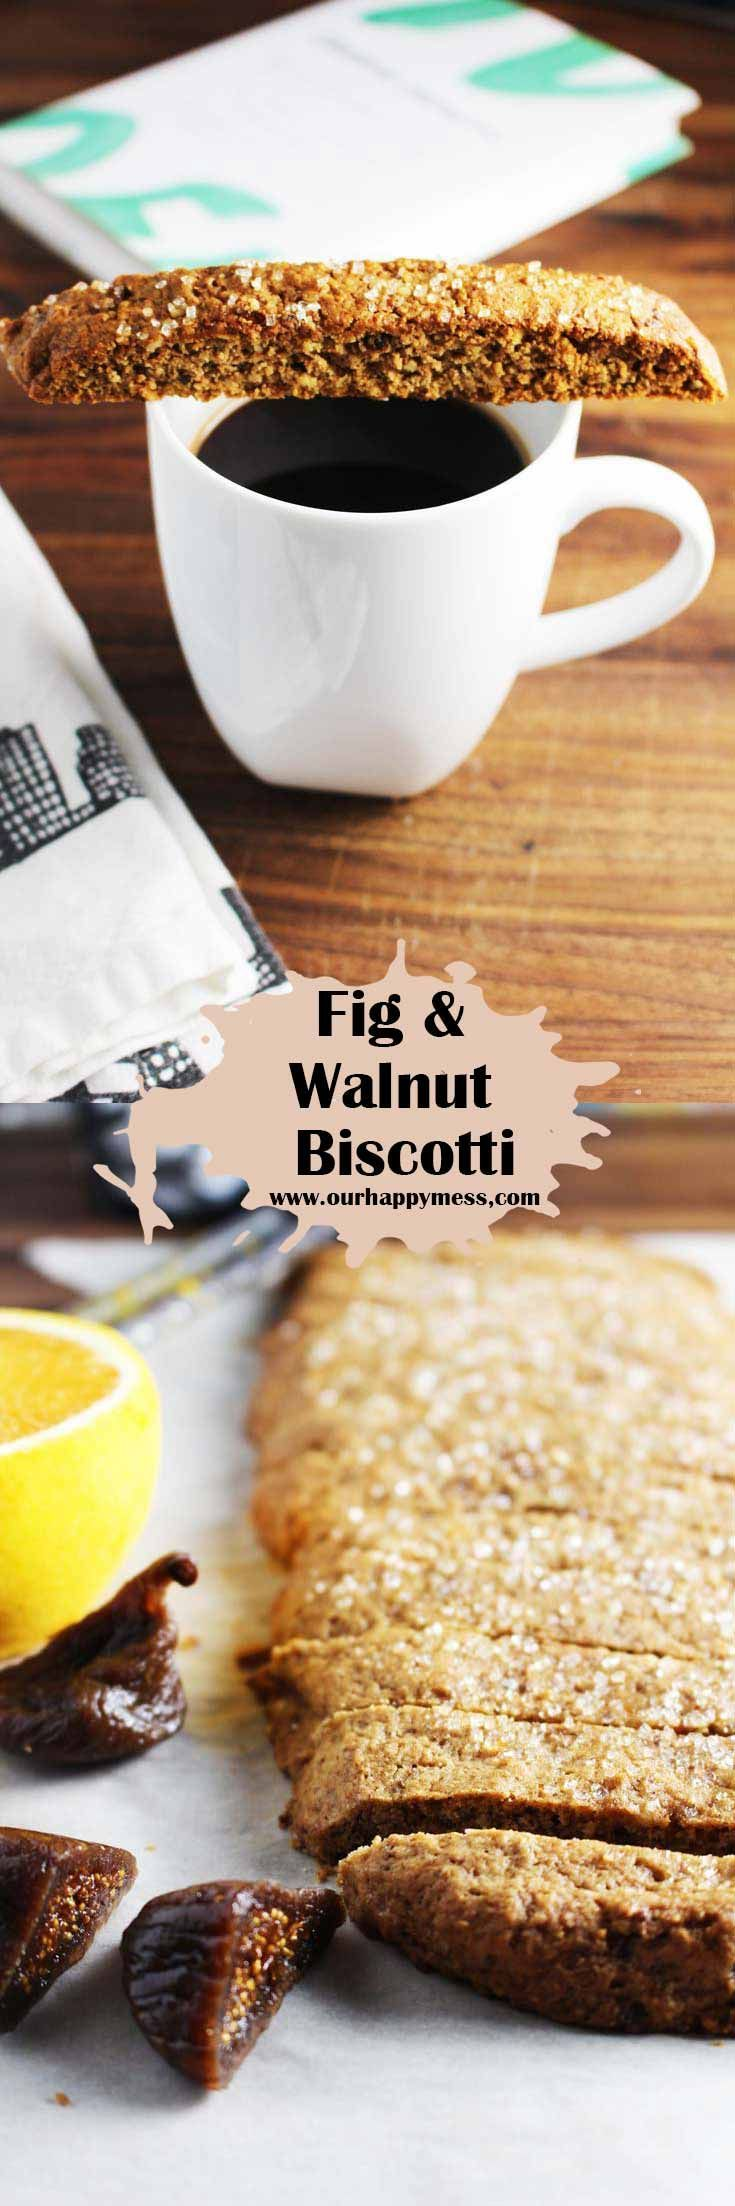 Fig and walnut biscotti featuring warm spices and plump dried figs are a delightfully crunchy cookie, perfect for the holidays, and great for gifting.  via @ourhappymess